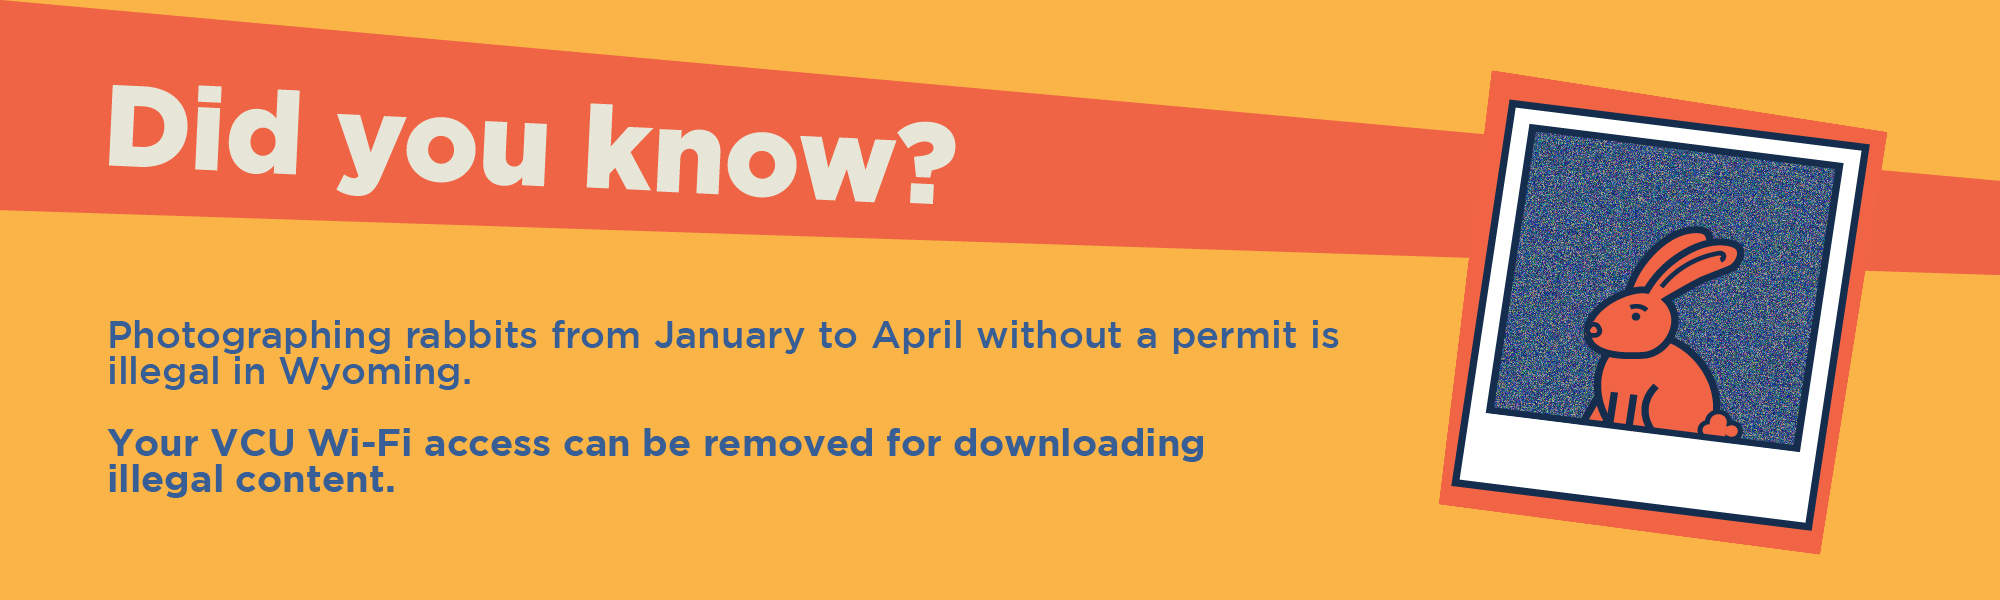 Did you know? Photographing rabbits from Janurary to April without a permit is illegal in Wyoming. Your VCU Wi-fi access can be removed for downloading illegal content.